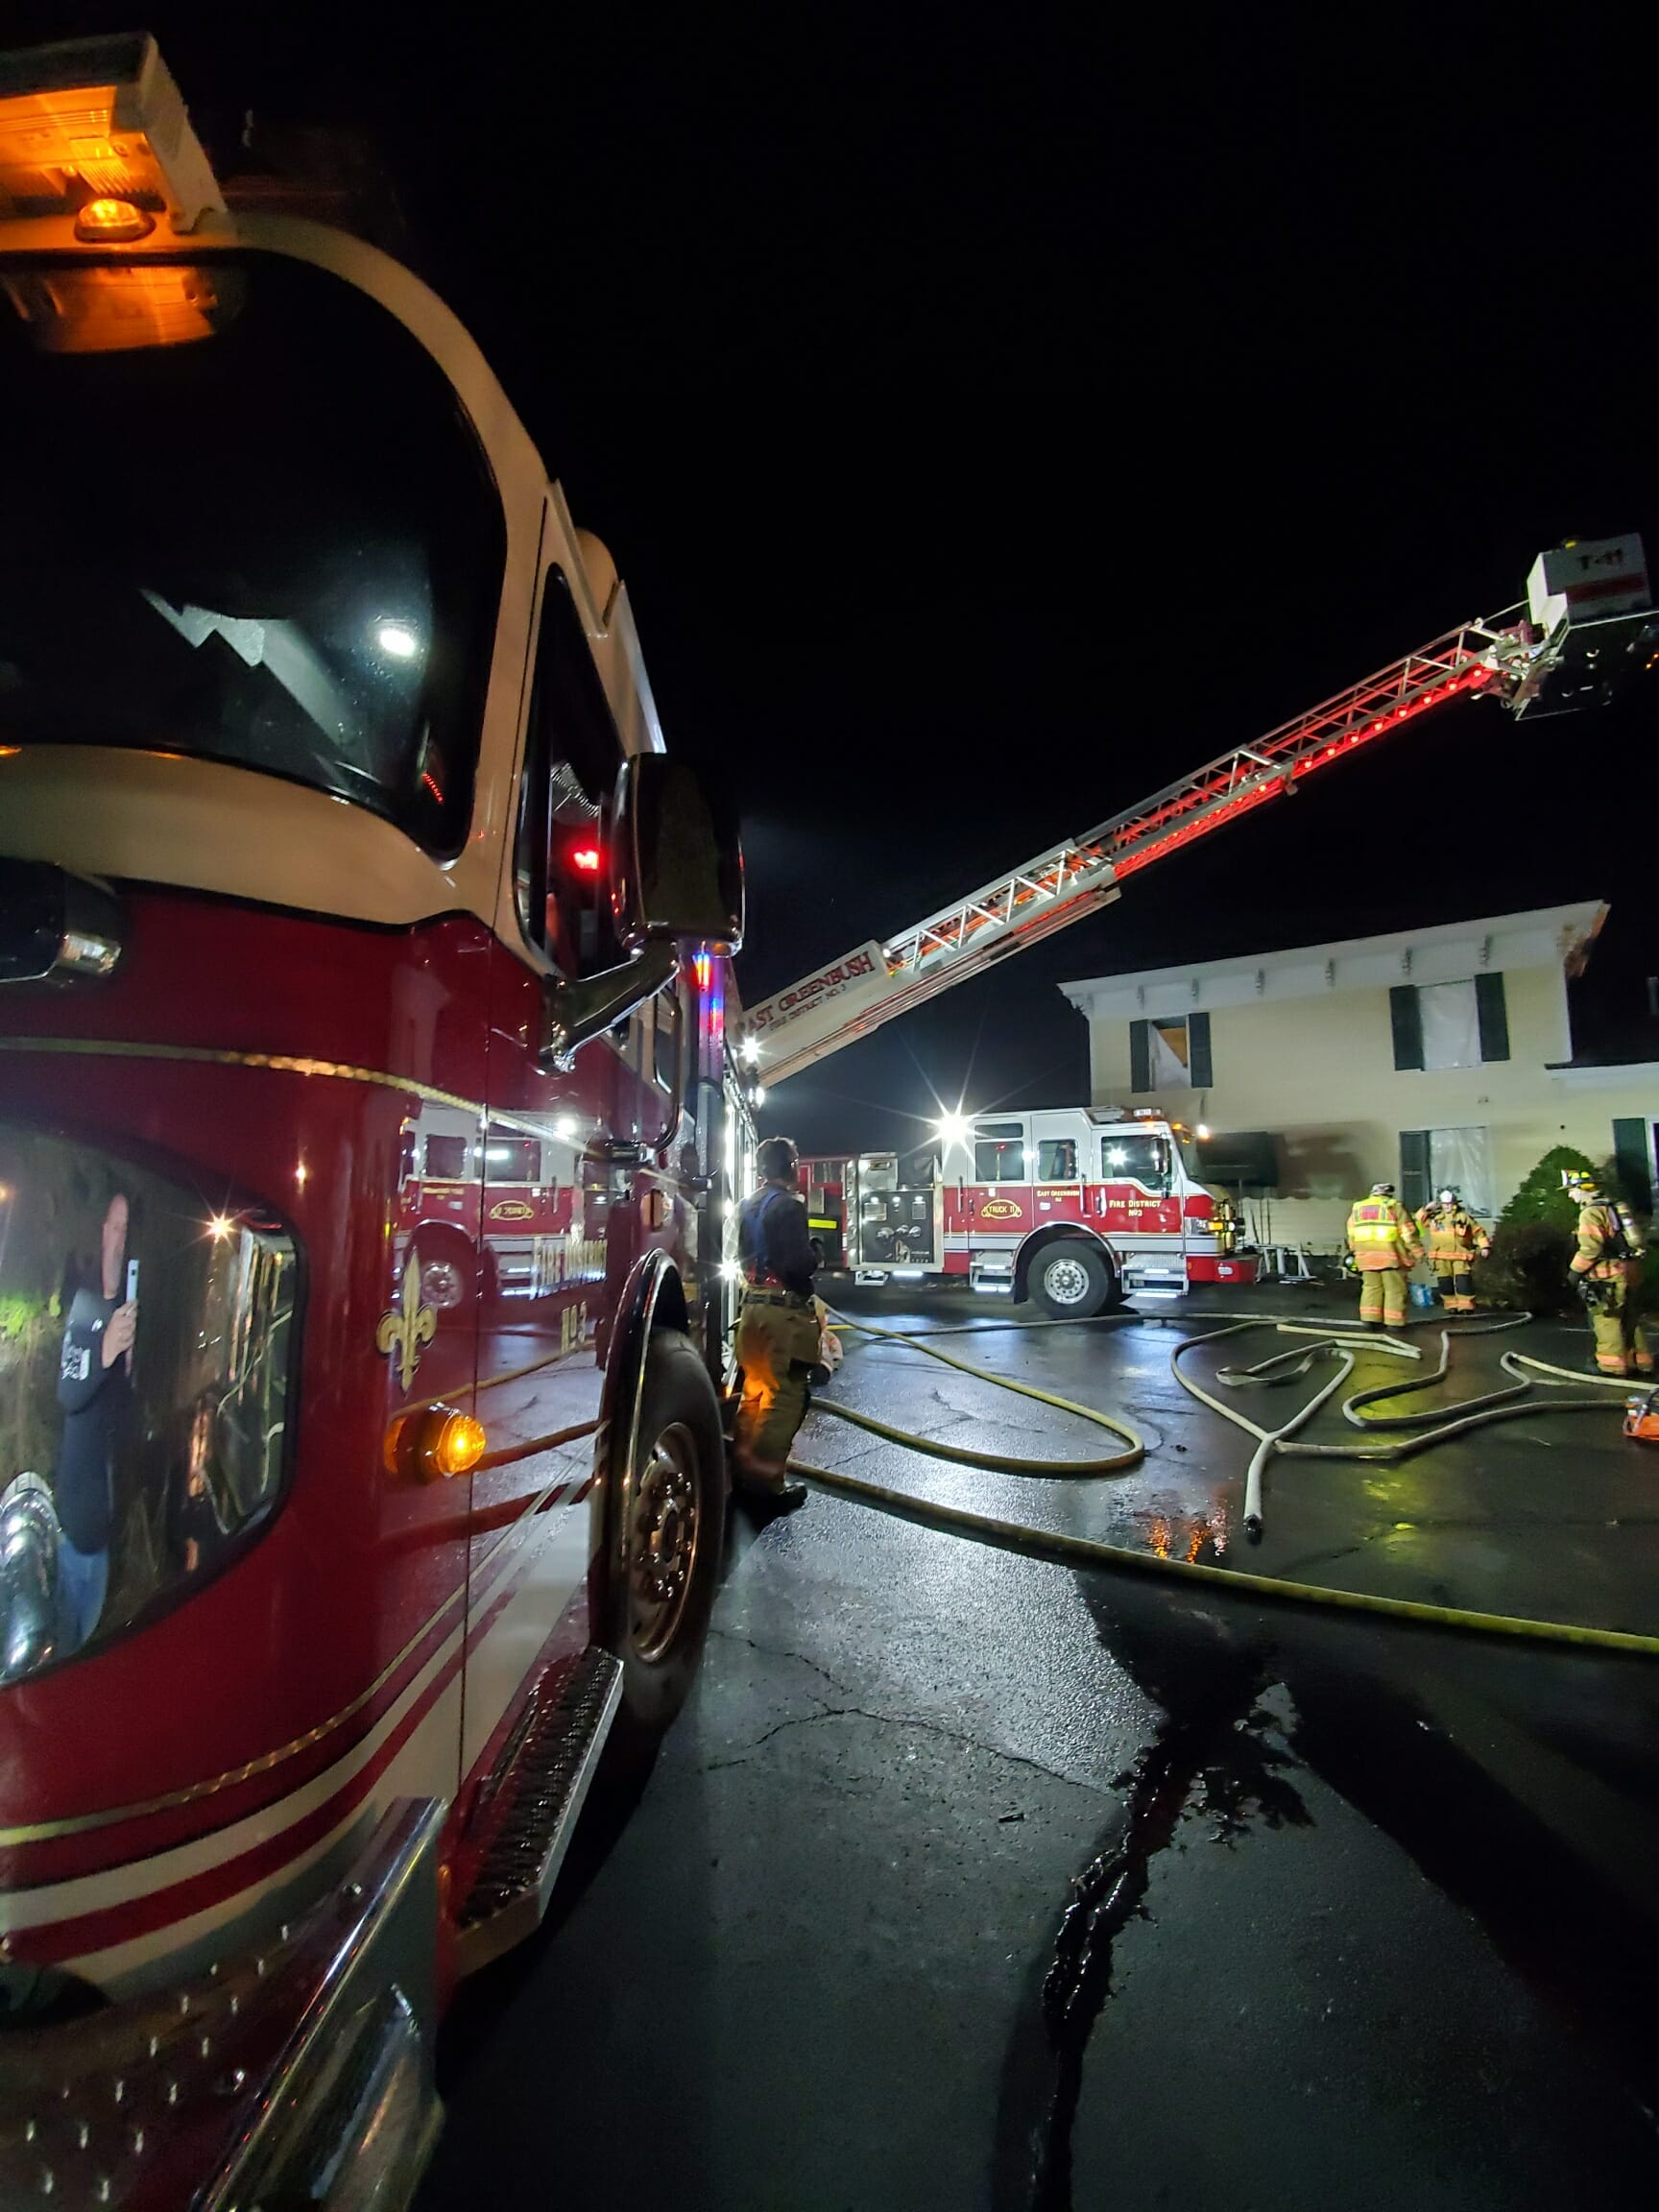 Fire trucks at night. Firefighters in front of a yellow building